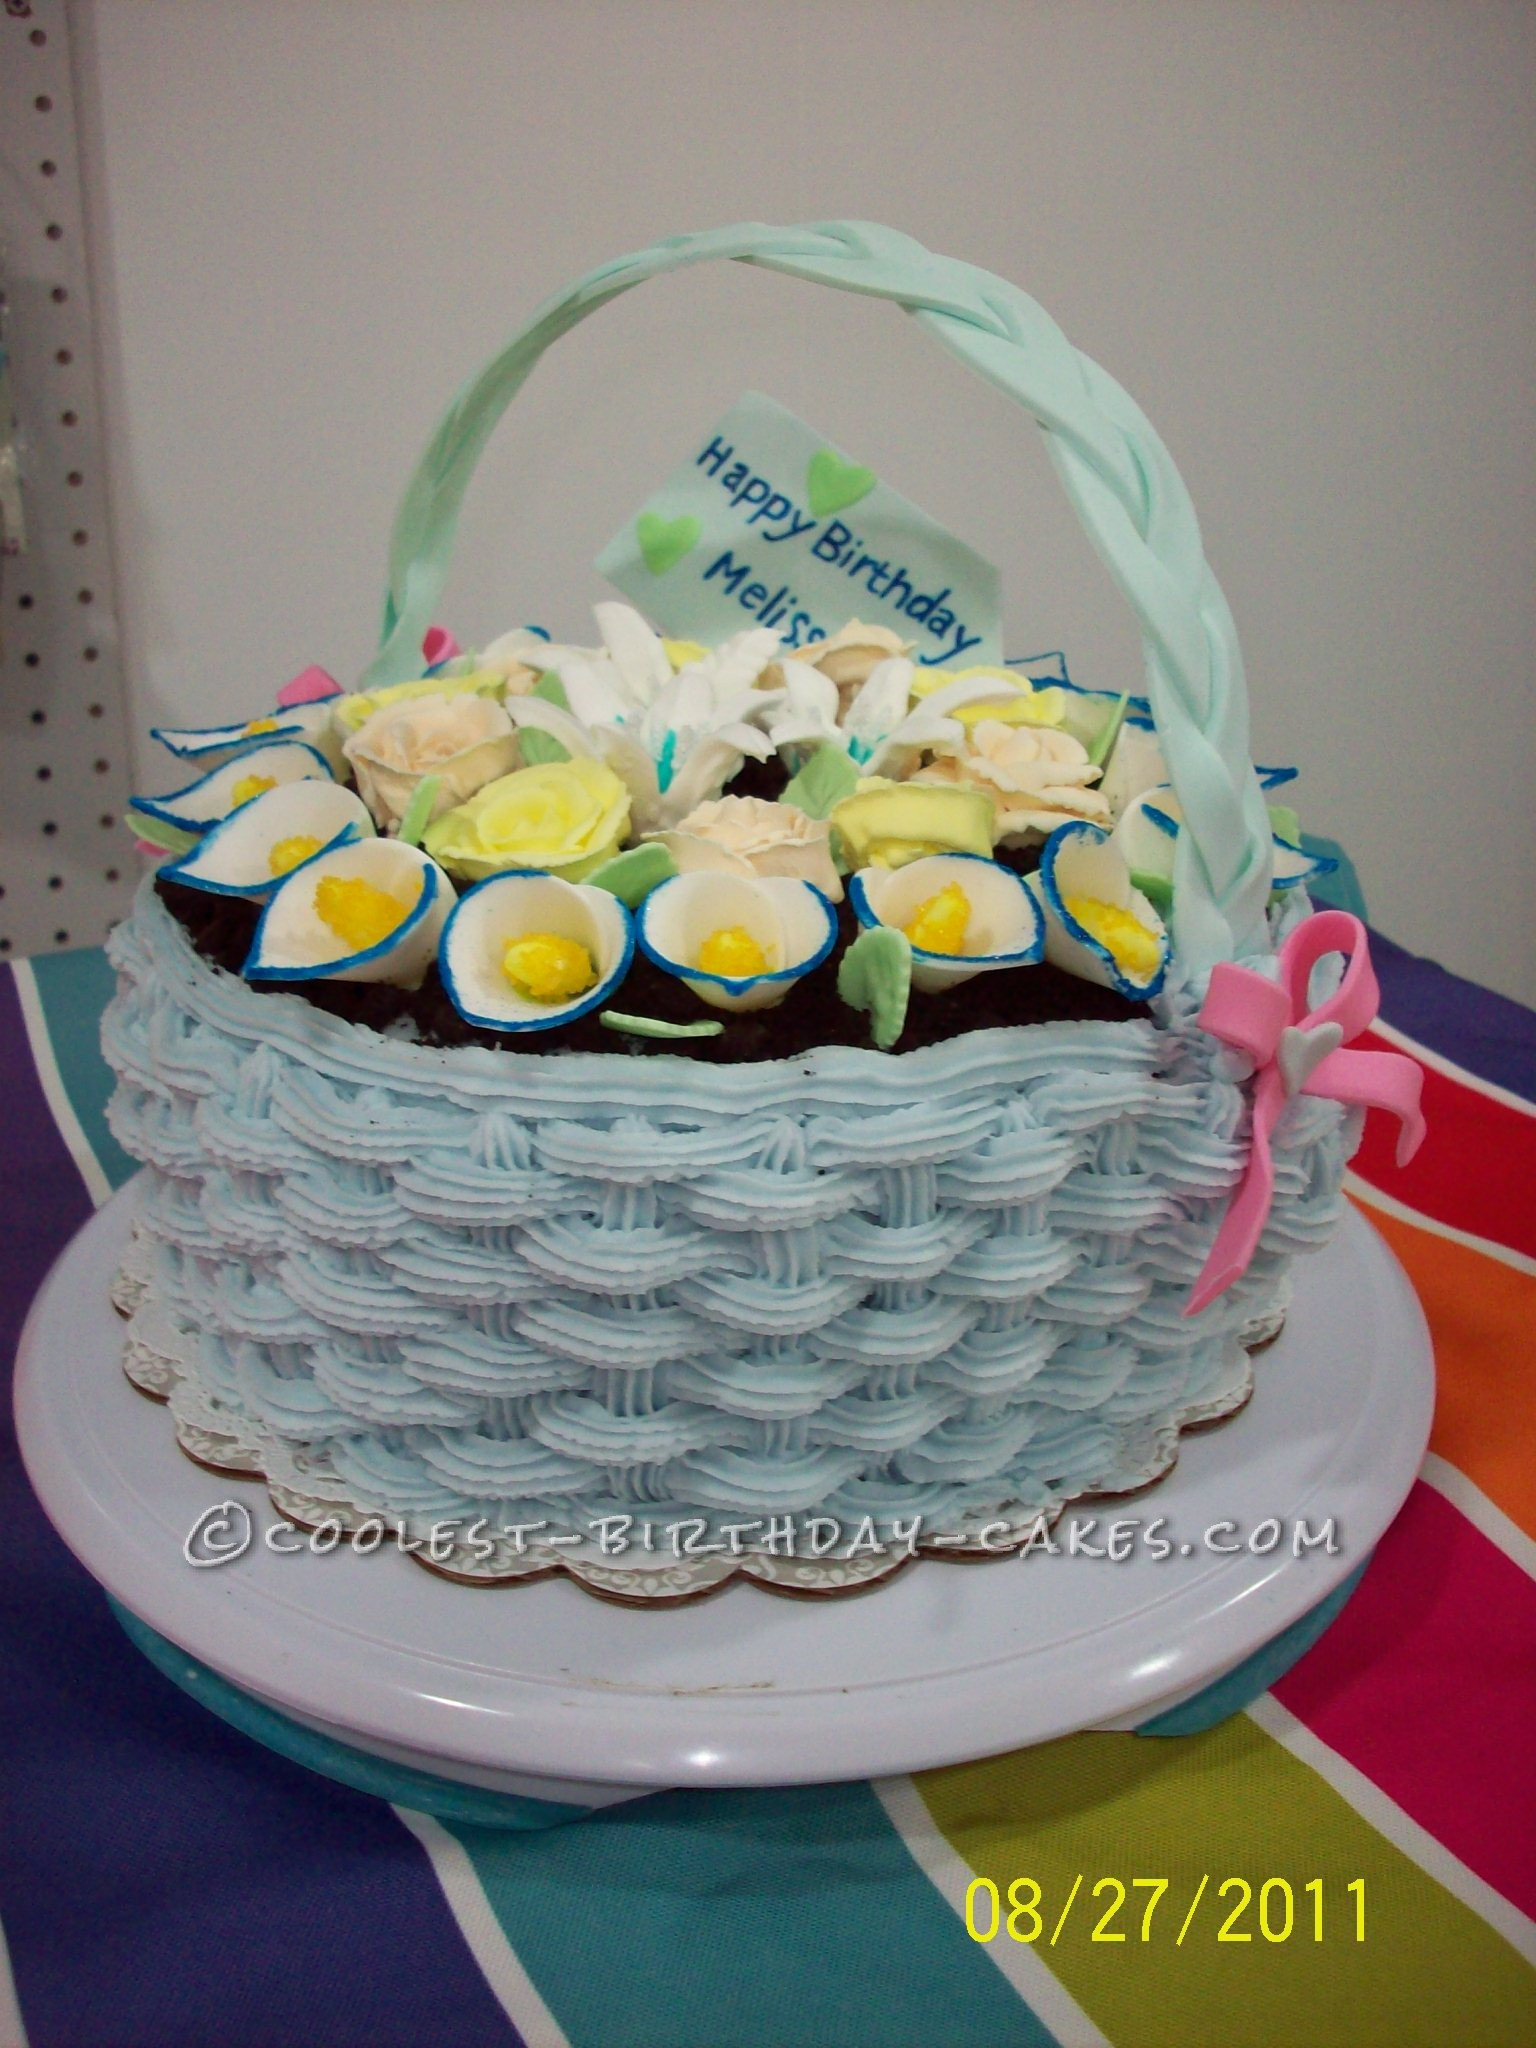 This Flower Basket Birthday Cake Is One Of My Favorite Cakes To Date We Made For A Friends Very Cute And Girly